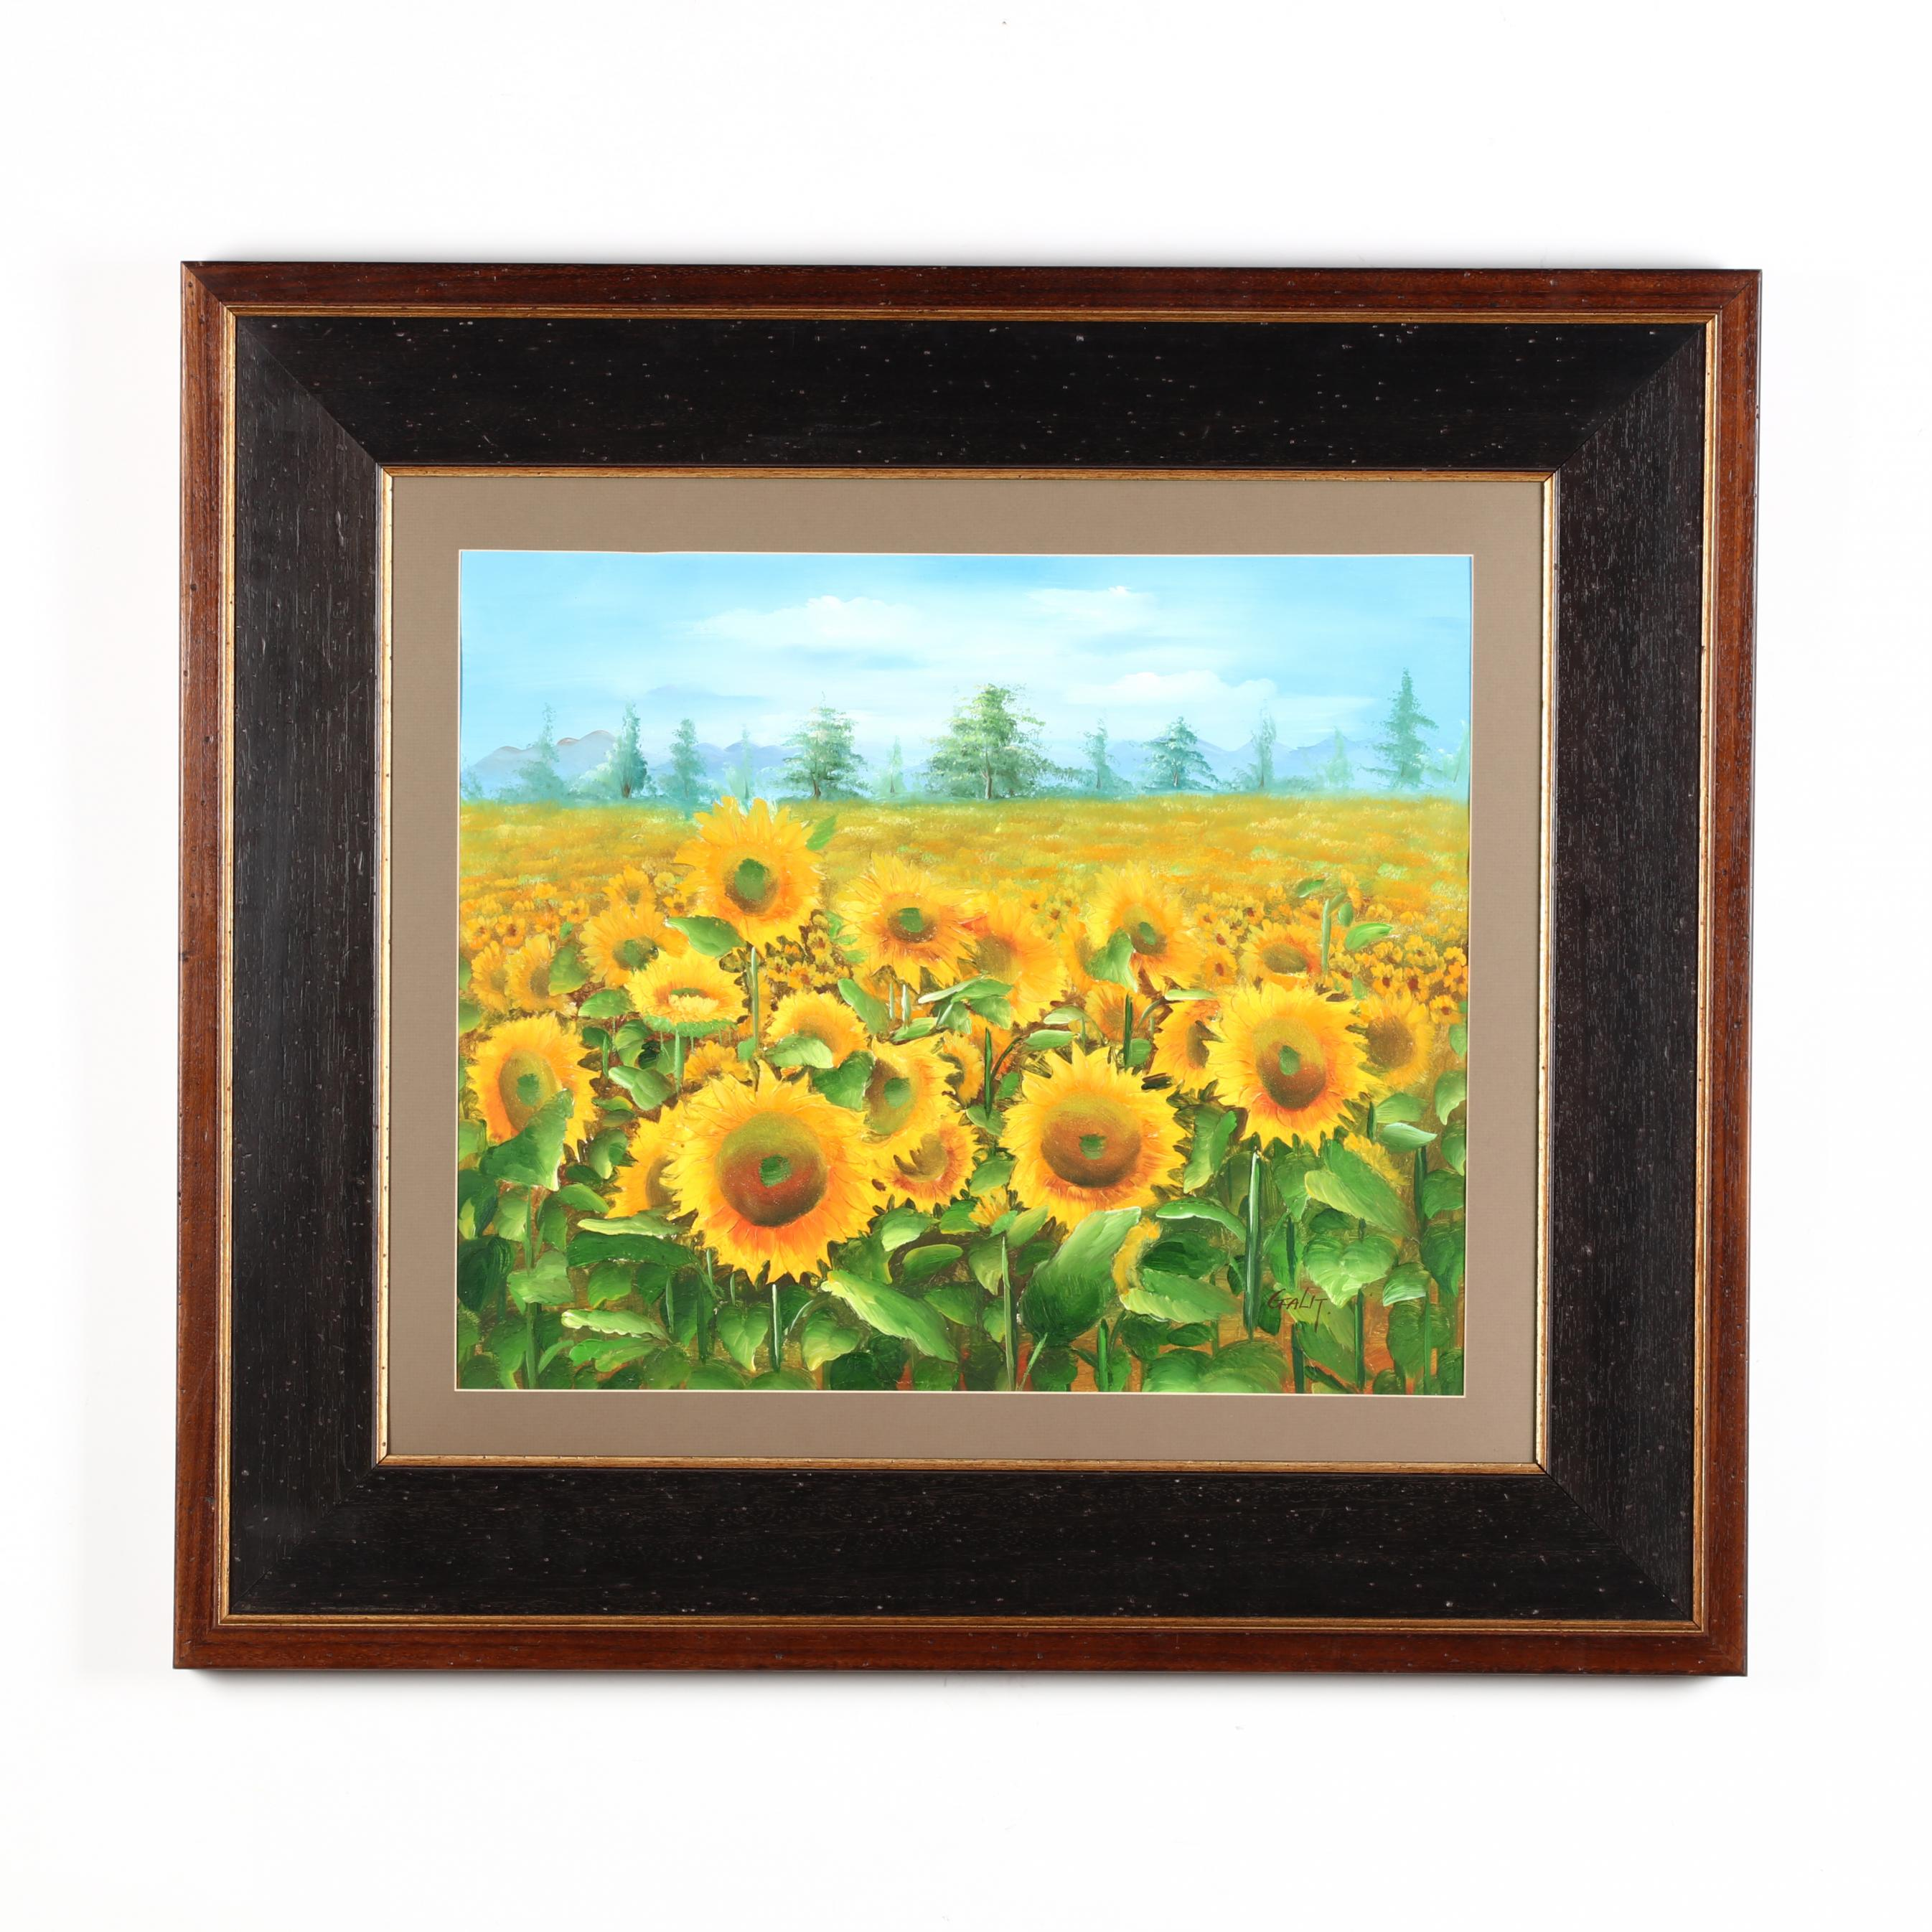 framed-landscape-with-sunflowers